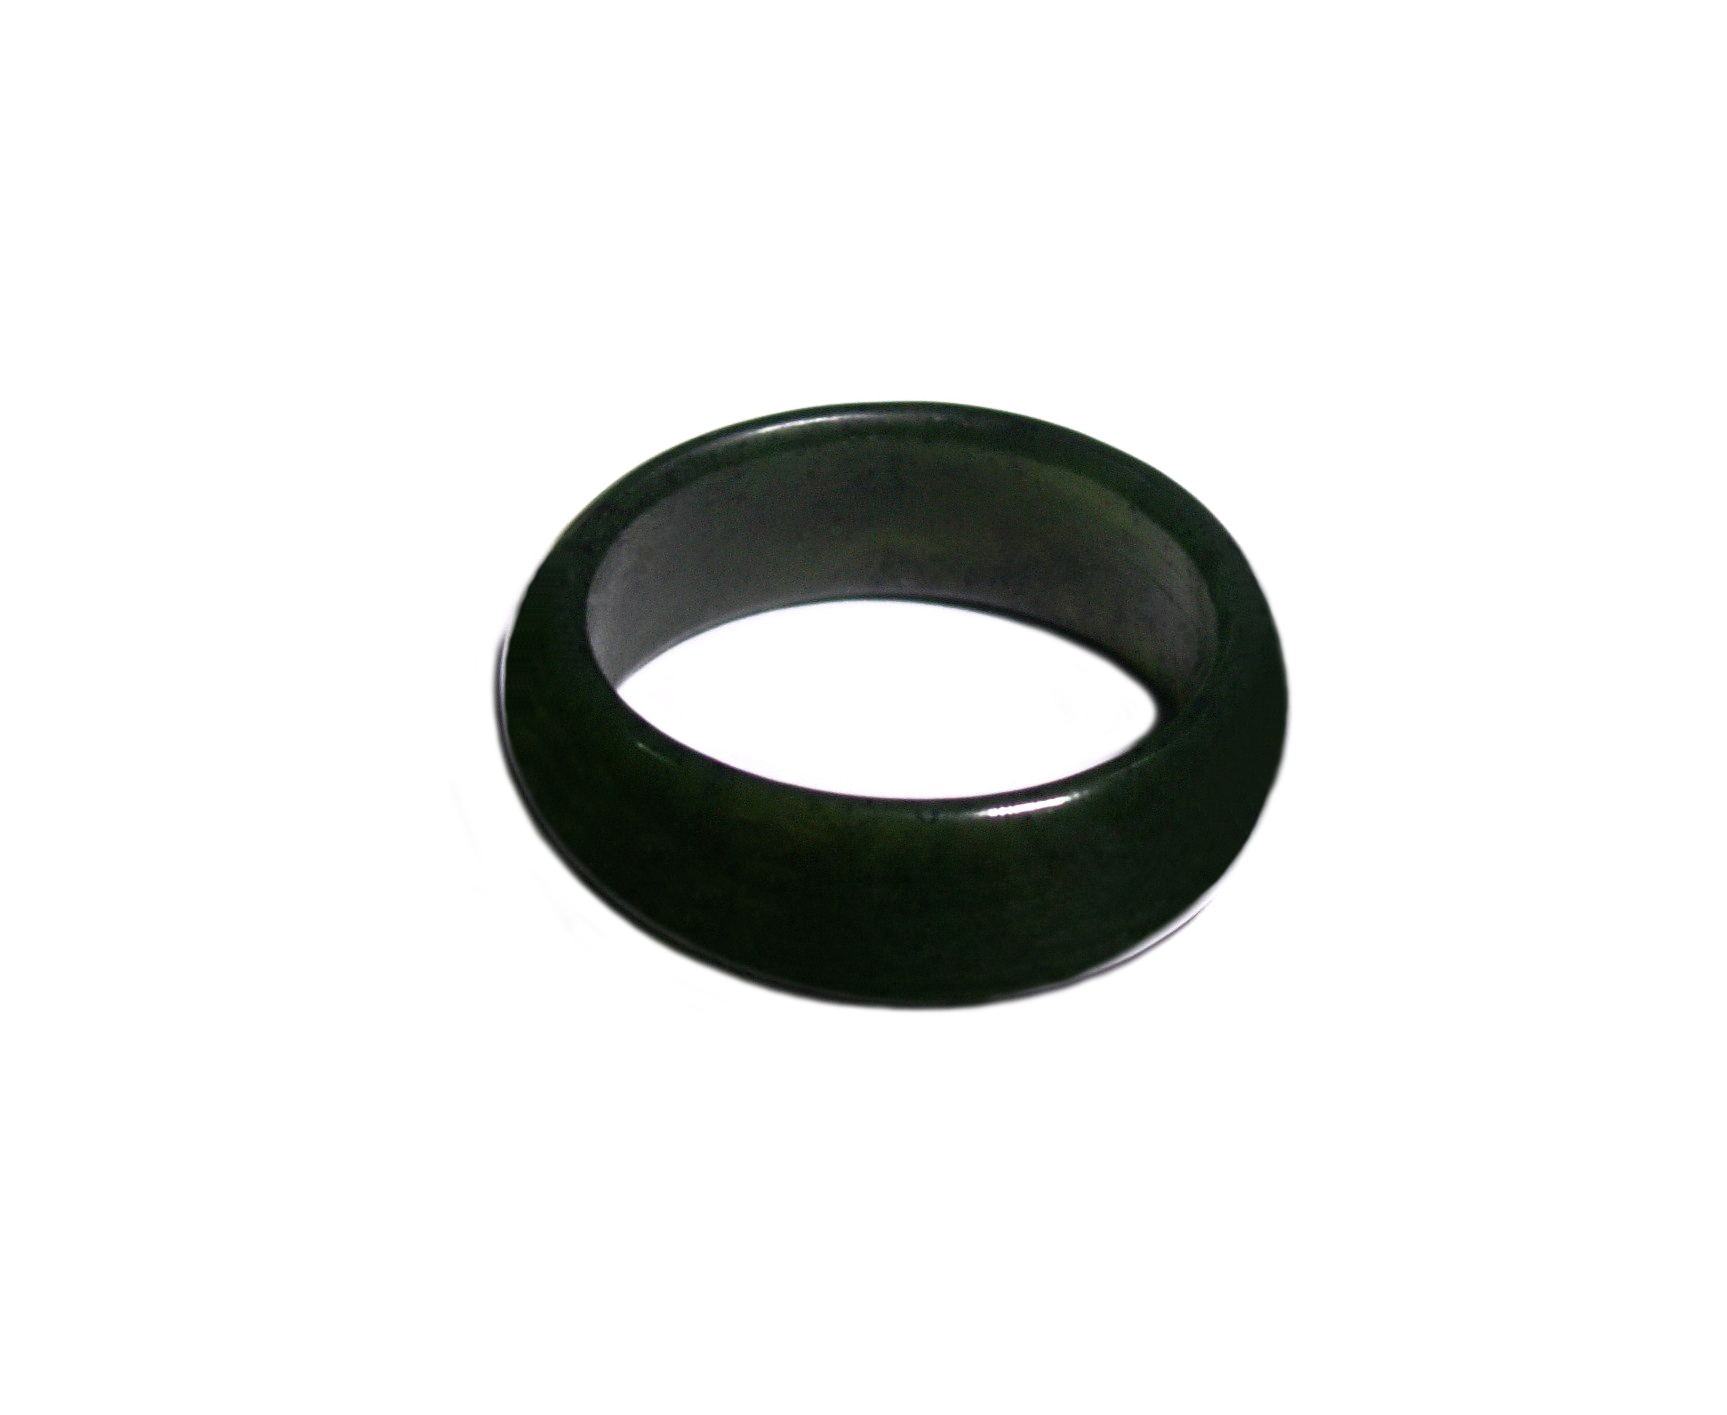 JADE 8MM WIDE BAND RING – SIZE U13(22.33mm)